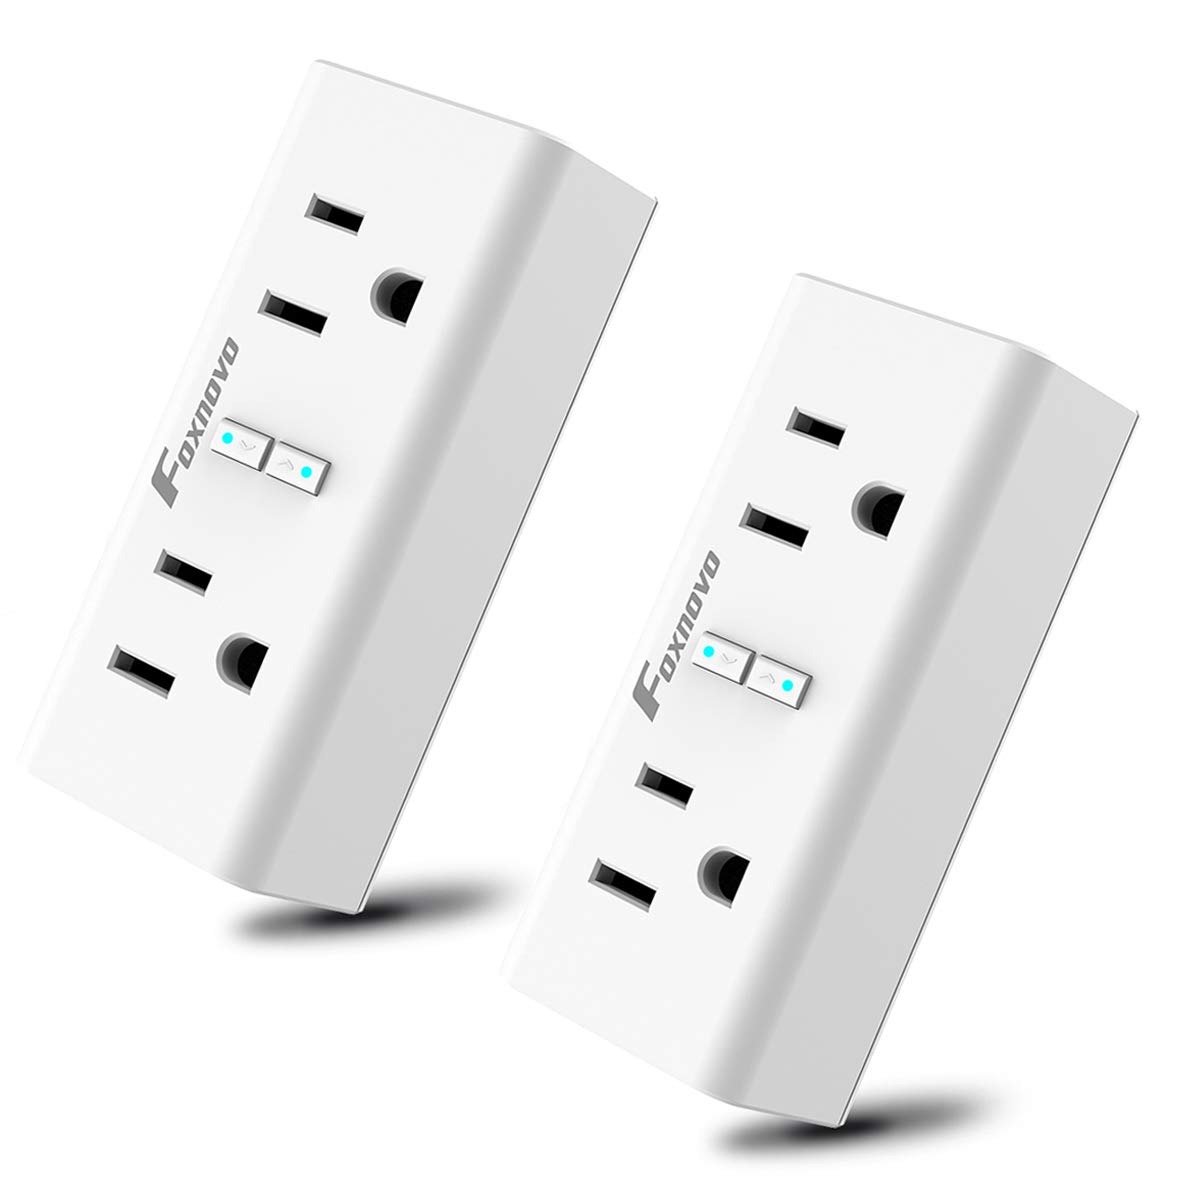 Foxnovo Wi-Fi Smart Plugs Outlet Switch 2 in 1 Mini Sockets with Energy Monitoring and Timer Function, Works with Amazon Echo Alexa and Google Home & IFTTT (2Pack)